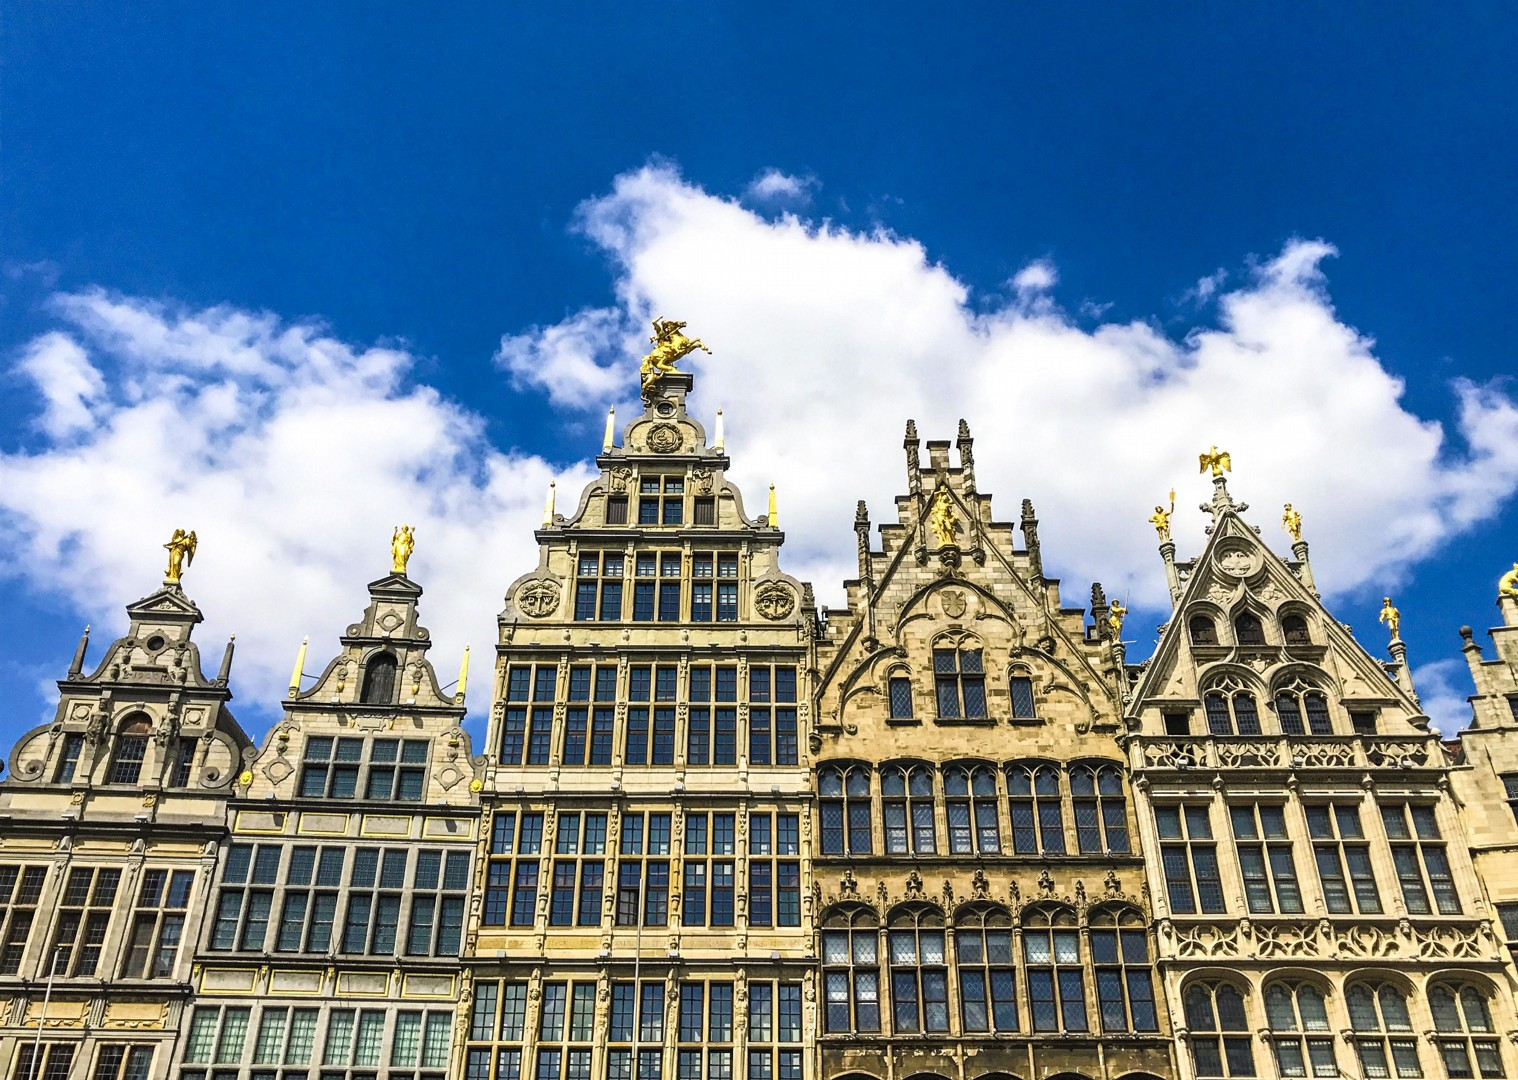 grote-markt-antwerp-belgium-visit-by-bike-and-barge.jpg - Holland and Belgium - Amsterdam to Bruges - Premium Bike and Barge Holiday - Leisure Cycling